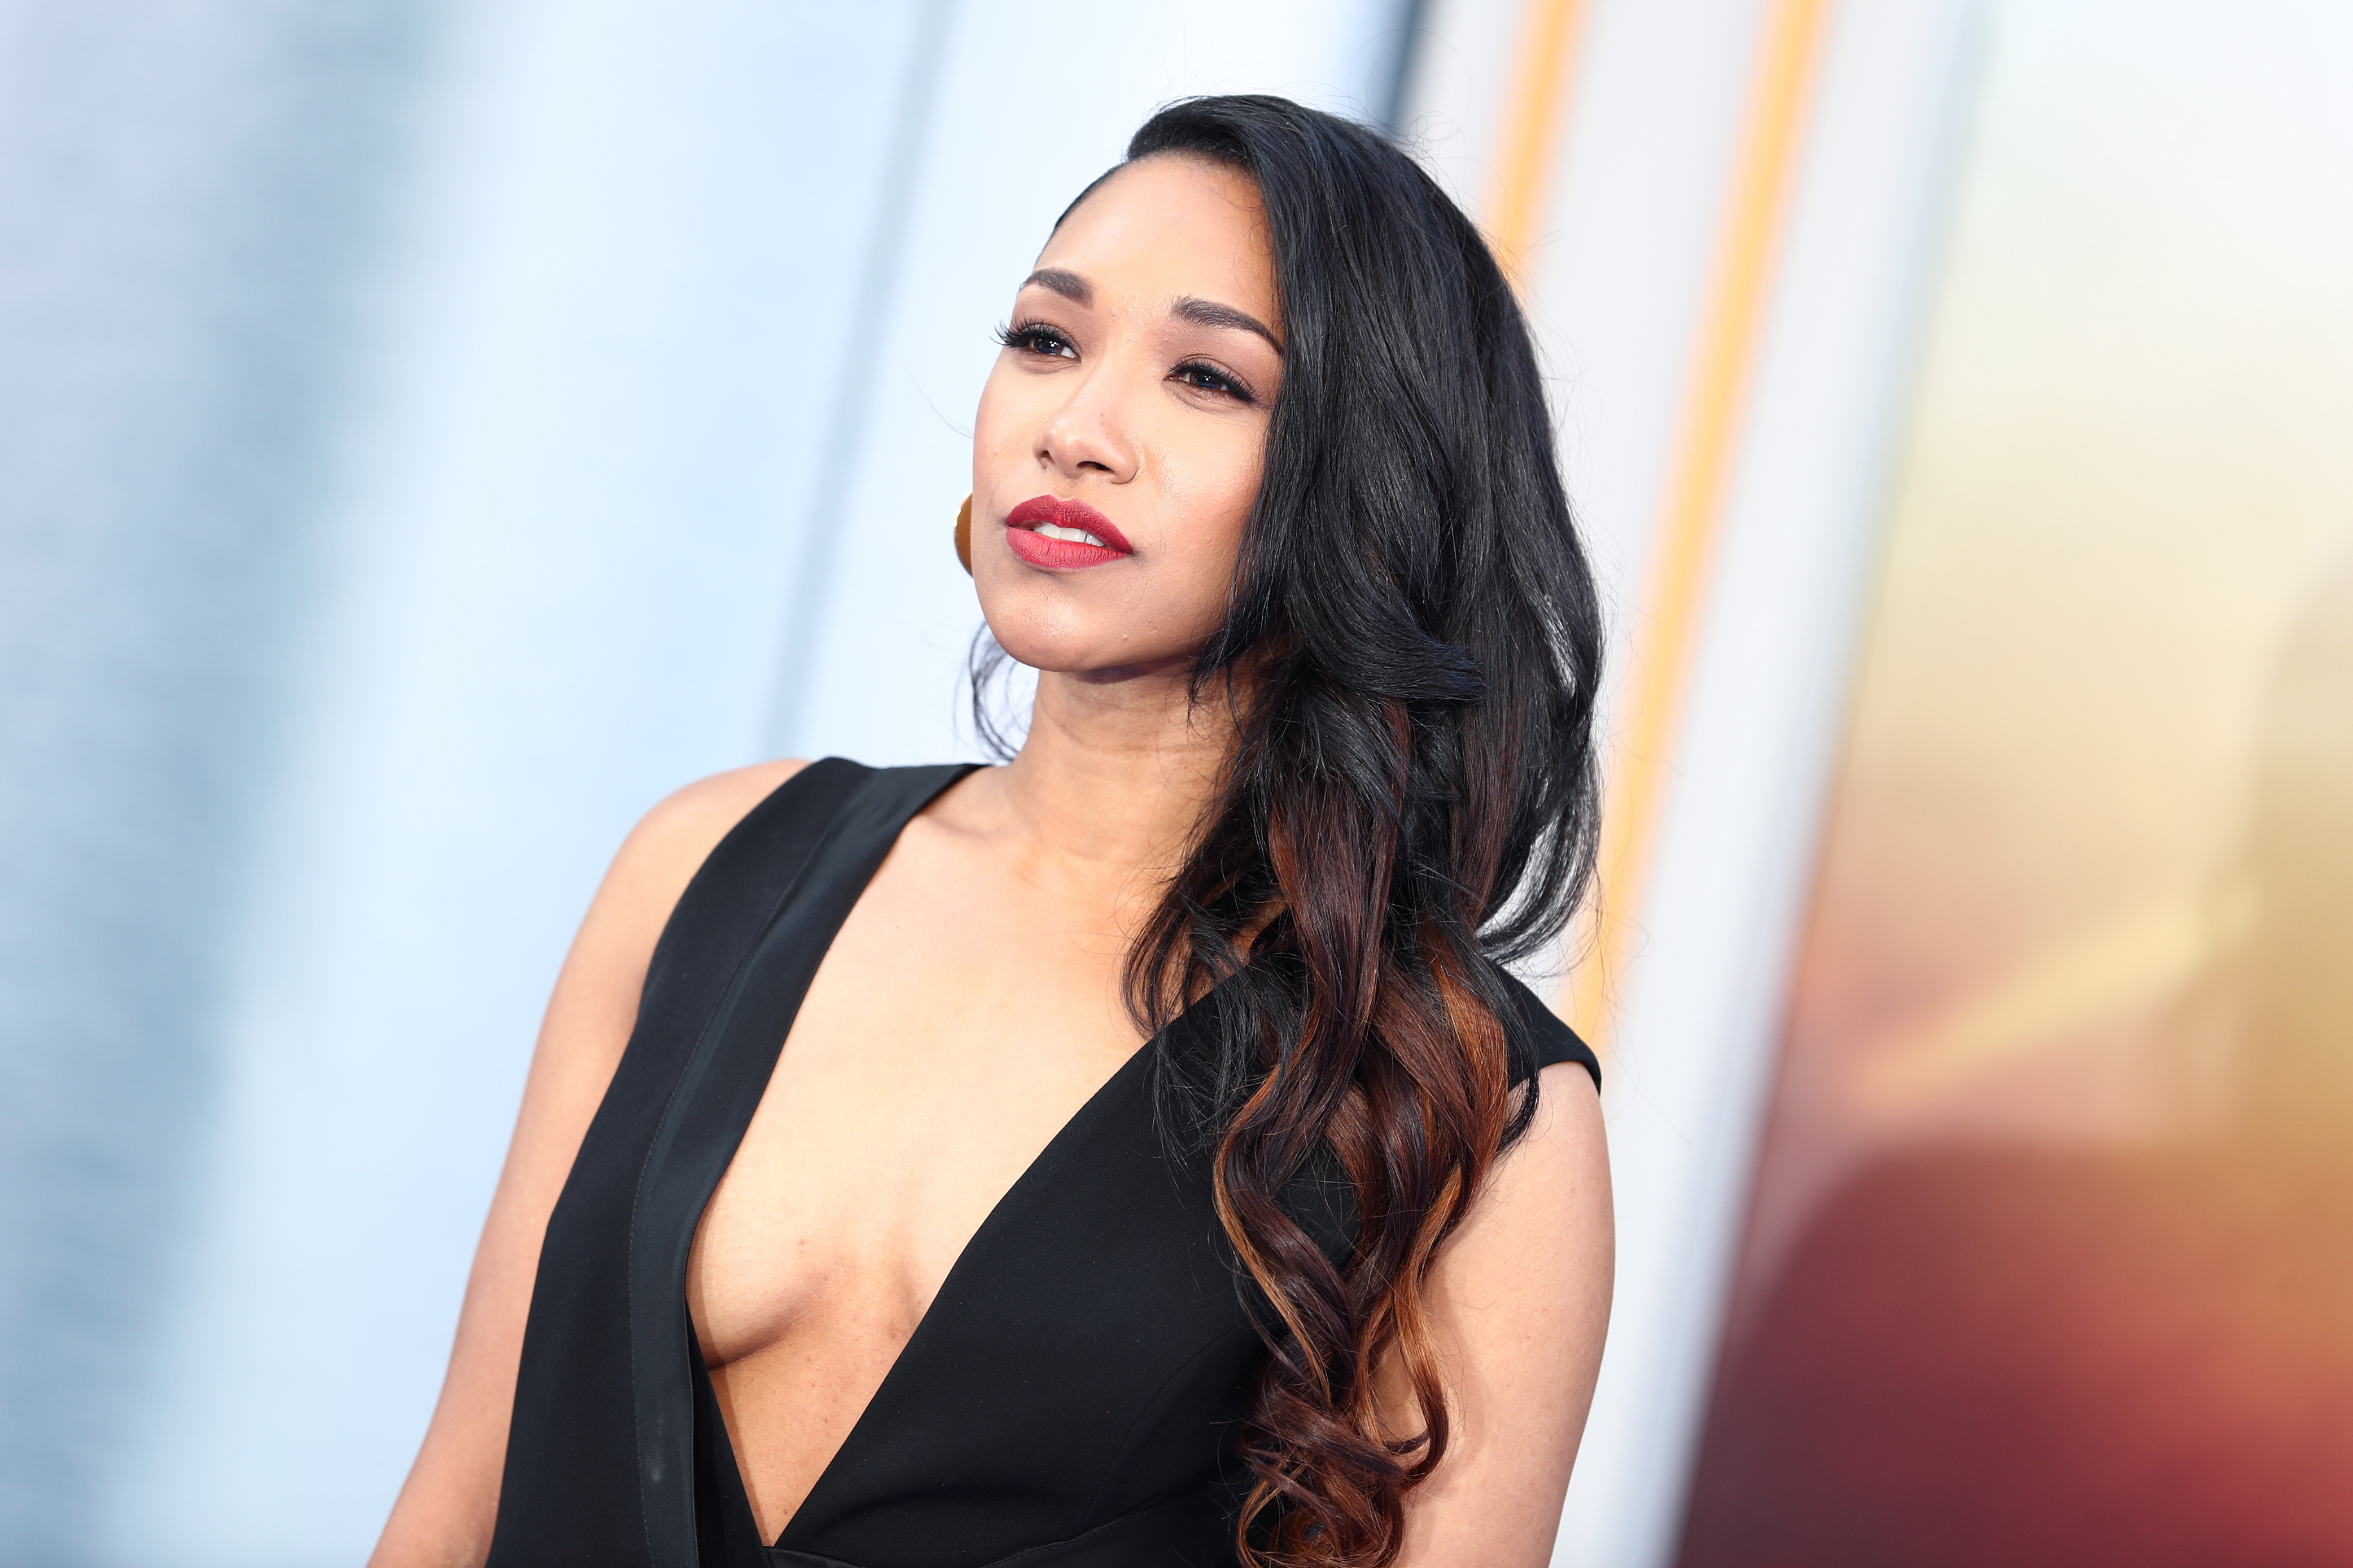 Apologise, but, Candice patton nue recommend